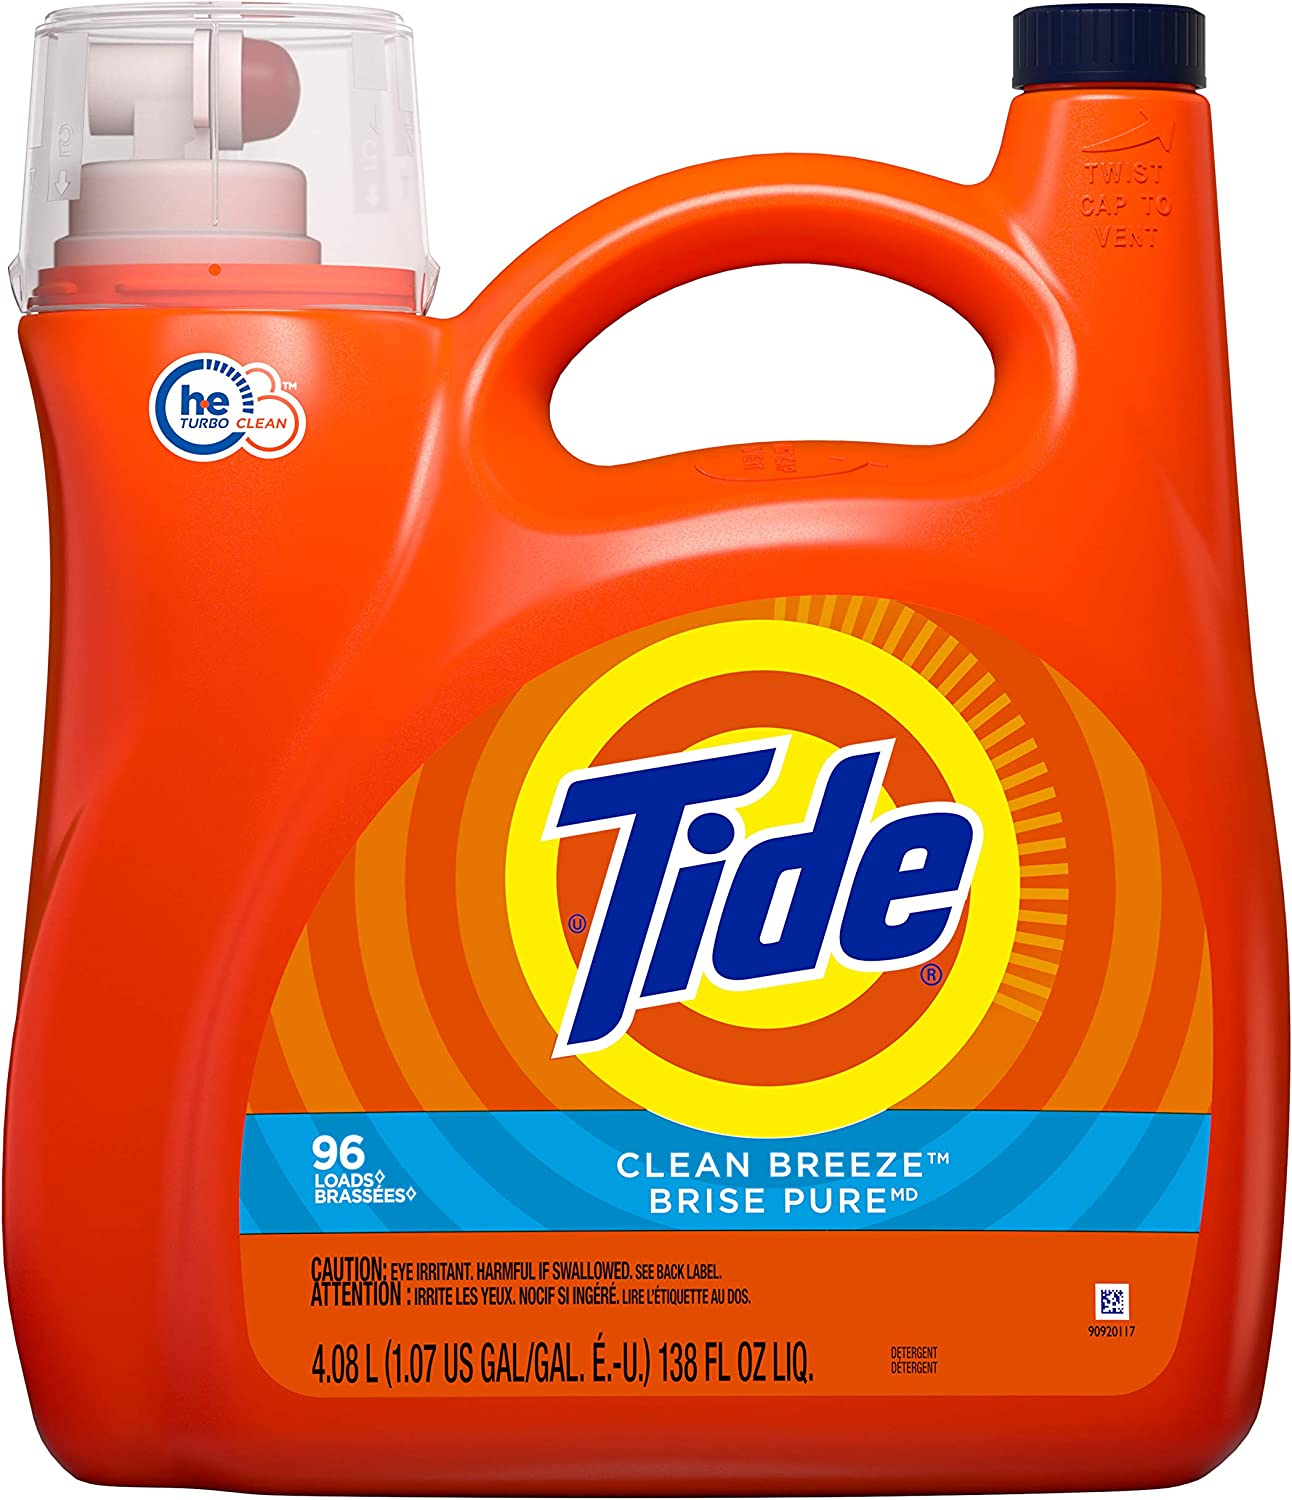 Tide Liquid Laundry Detergent, Clean Breeze, 96 Loads 138 Fl Oz